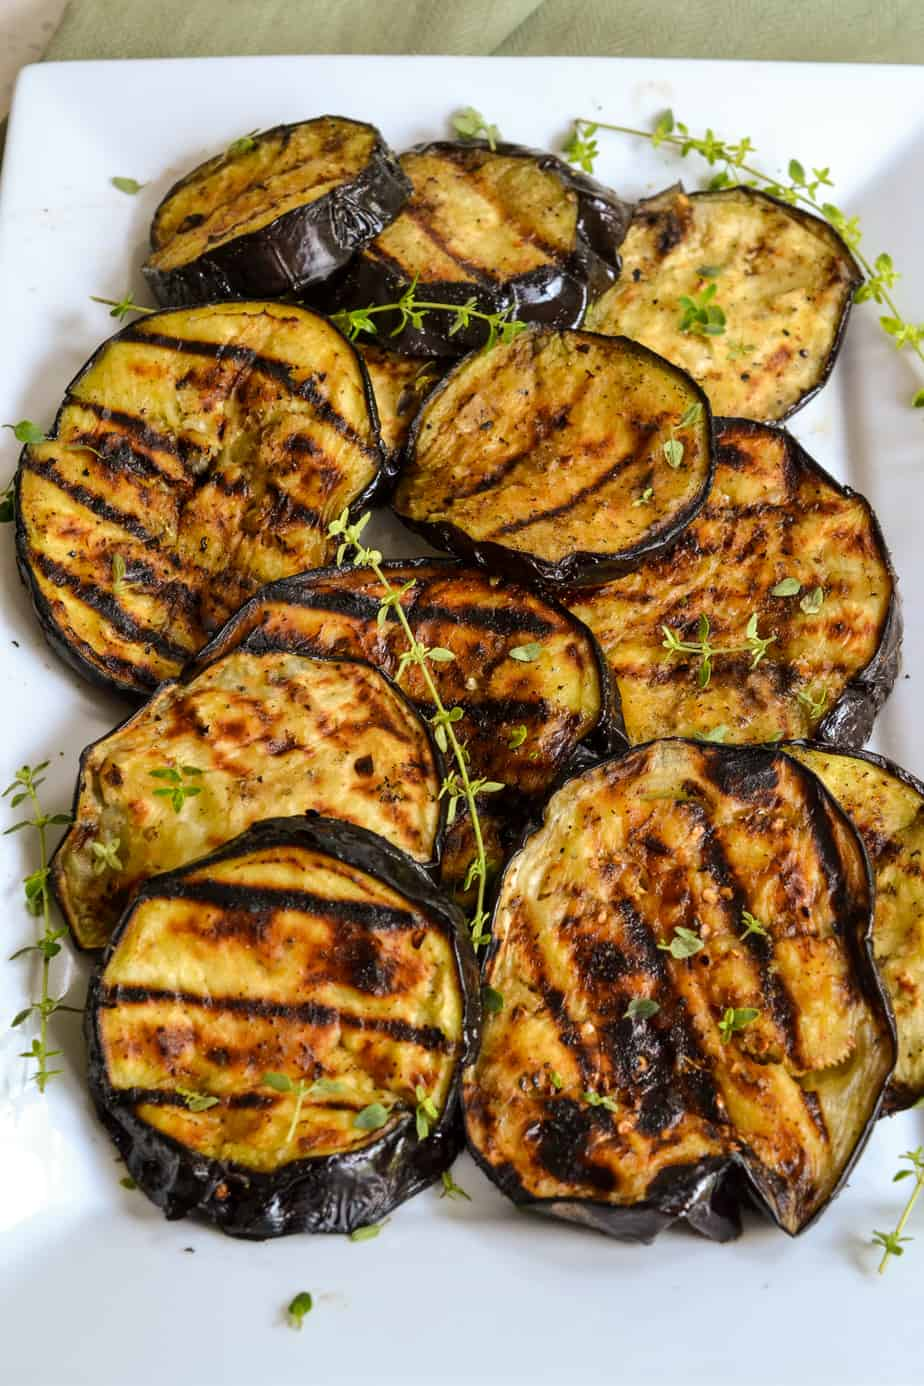 Fresh eggplant grilled with olive oil and herbs.